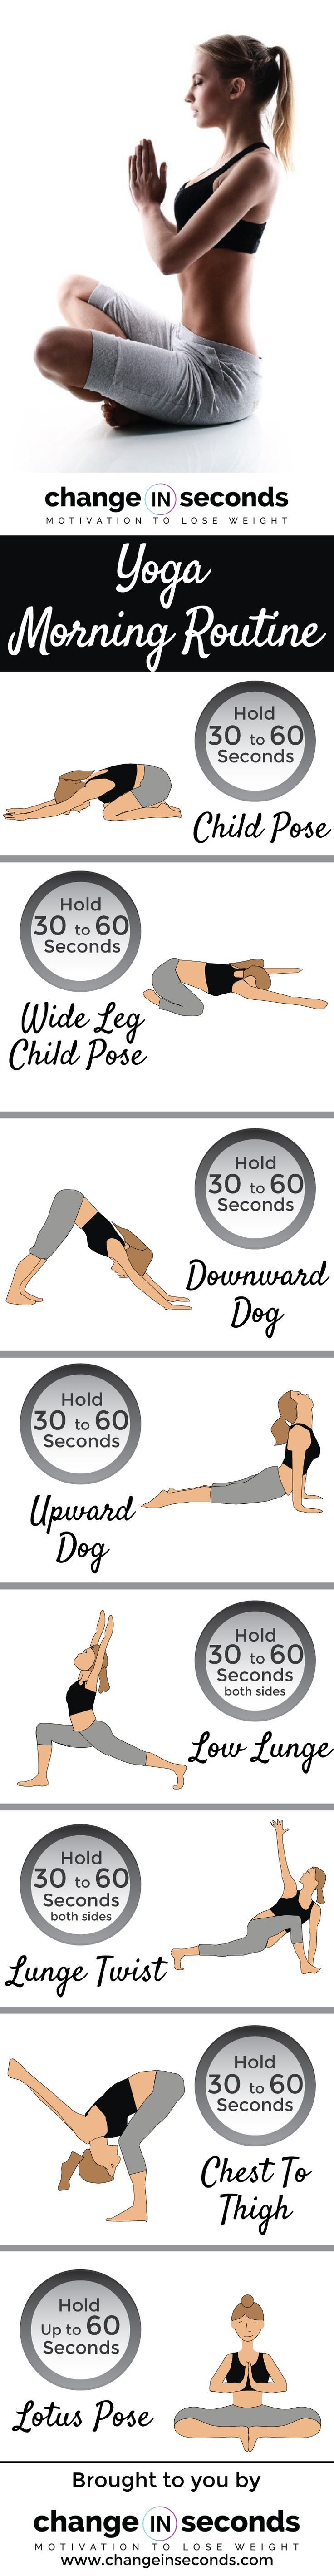 Yoga Morning Routine (Download PDF) http://www.changeinseconds.com/yoga-morning-routine/